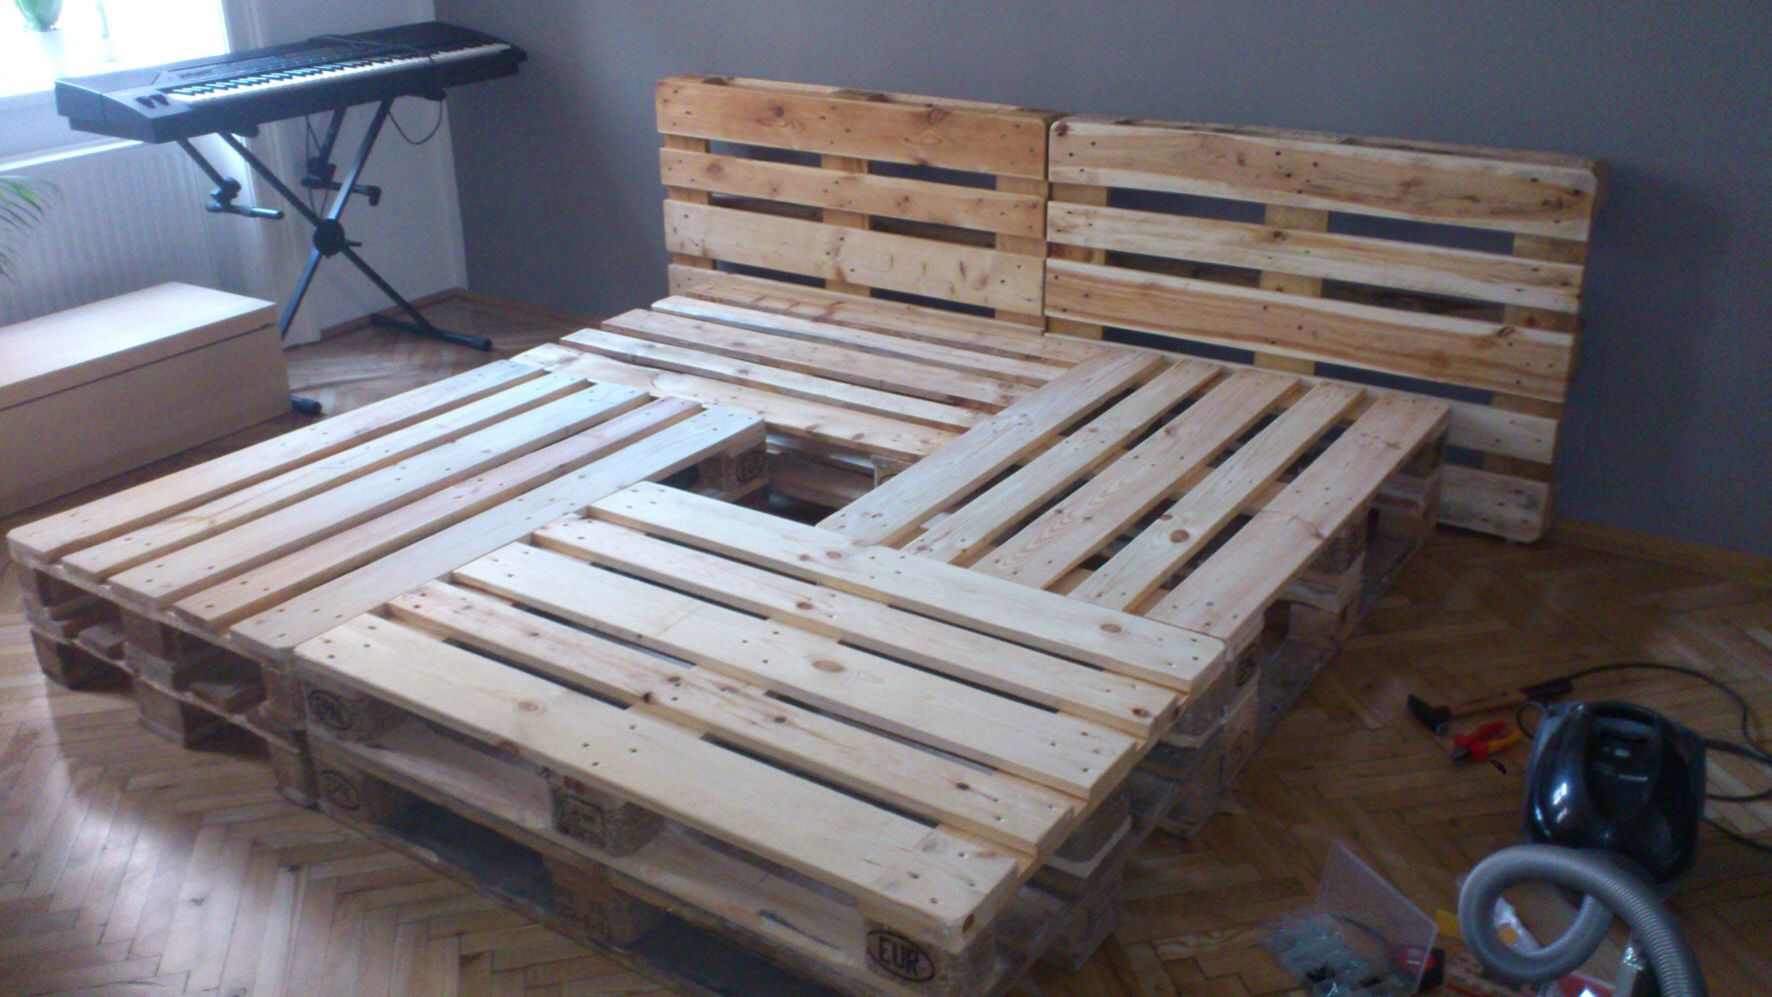 Bettgestell Europaletten Diy Euro Pallets Bed Paletten Bett Pallets Palette Bed Diy